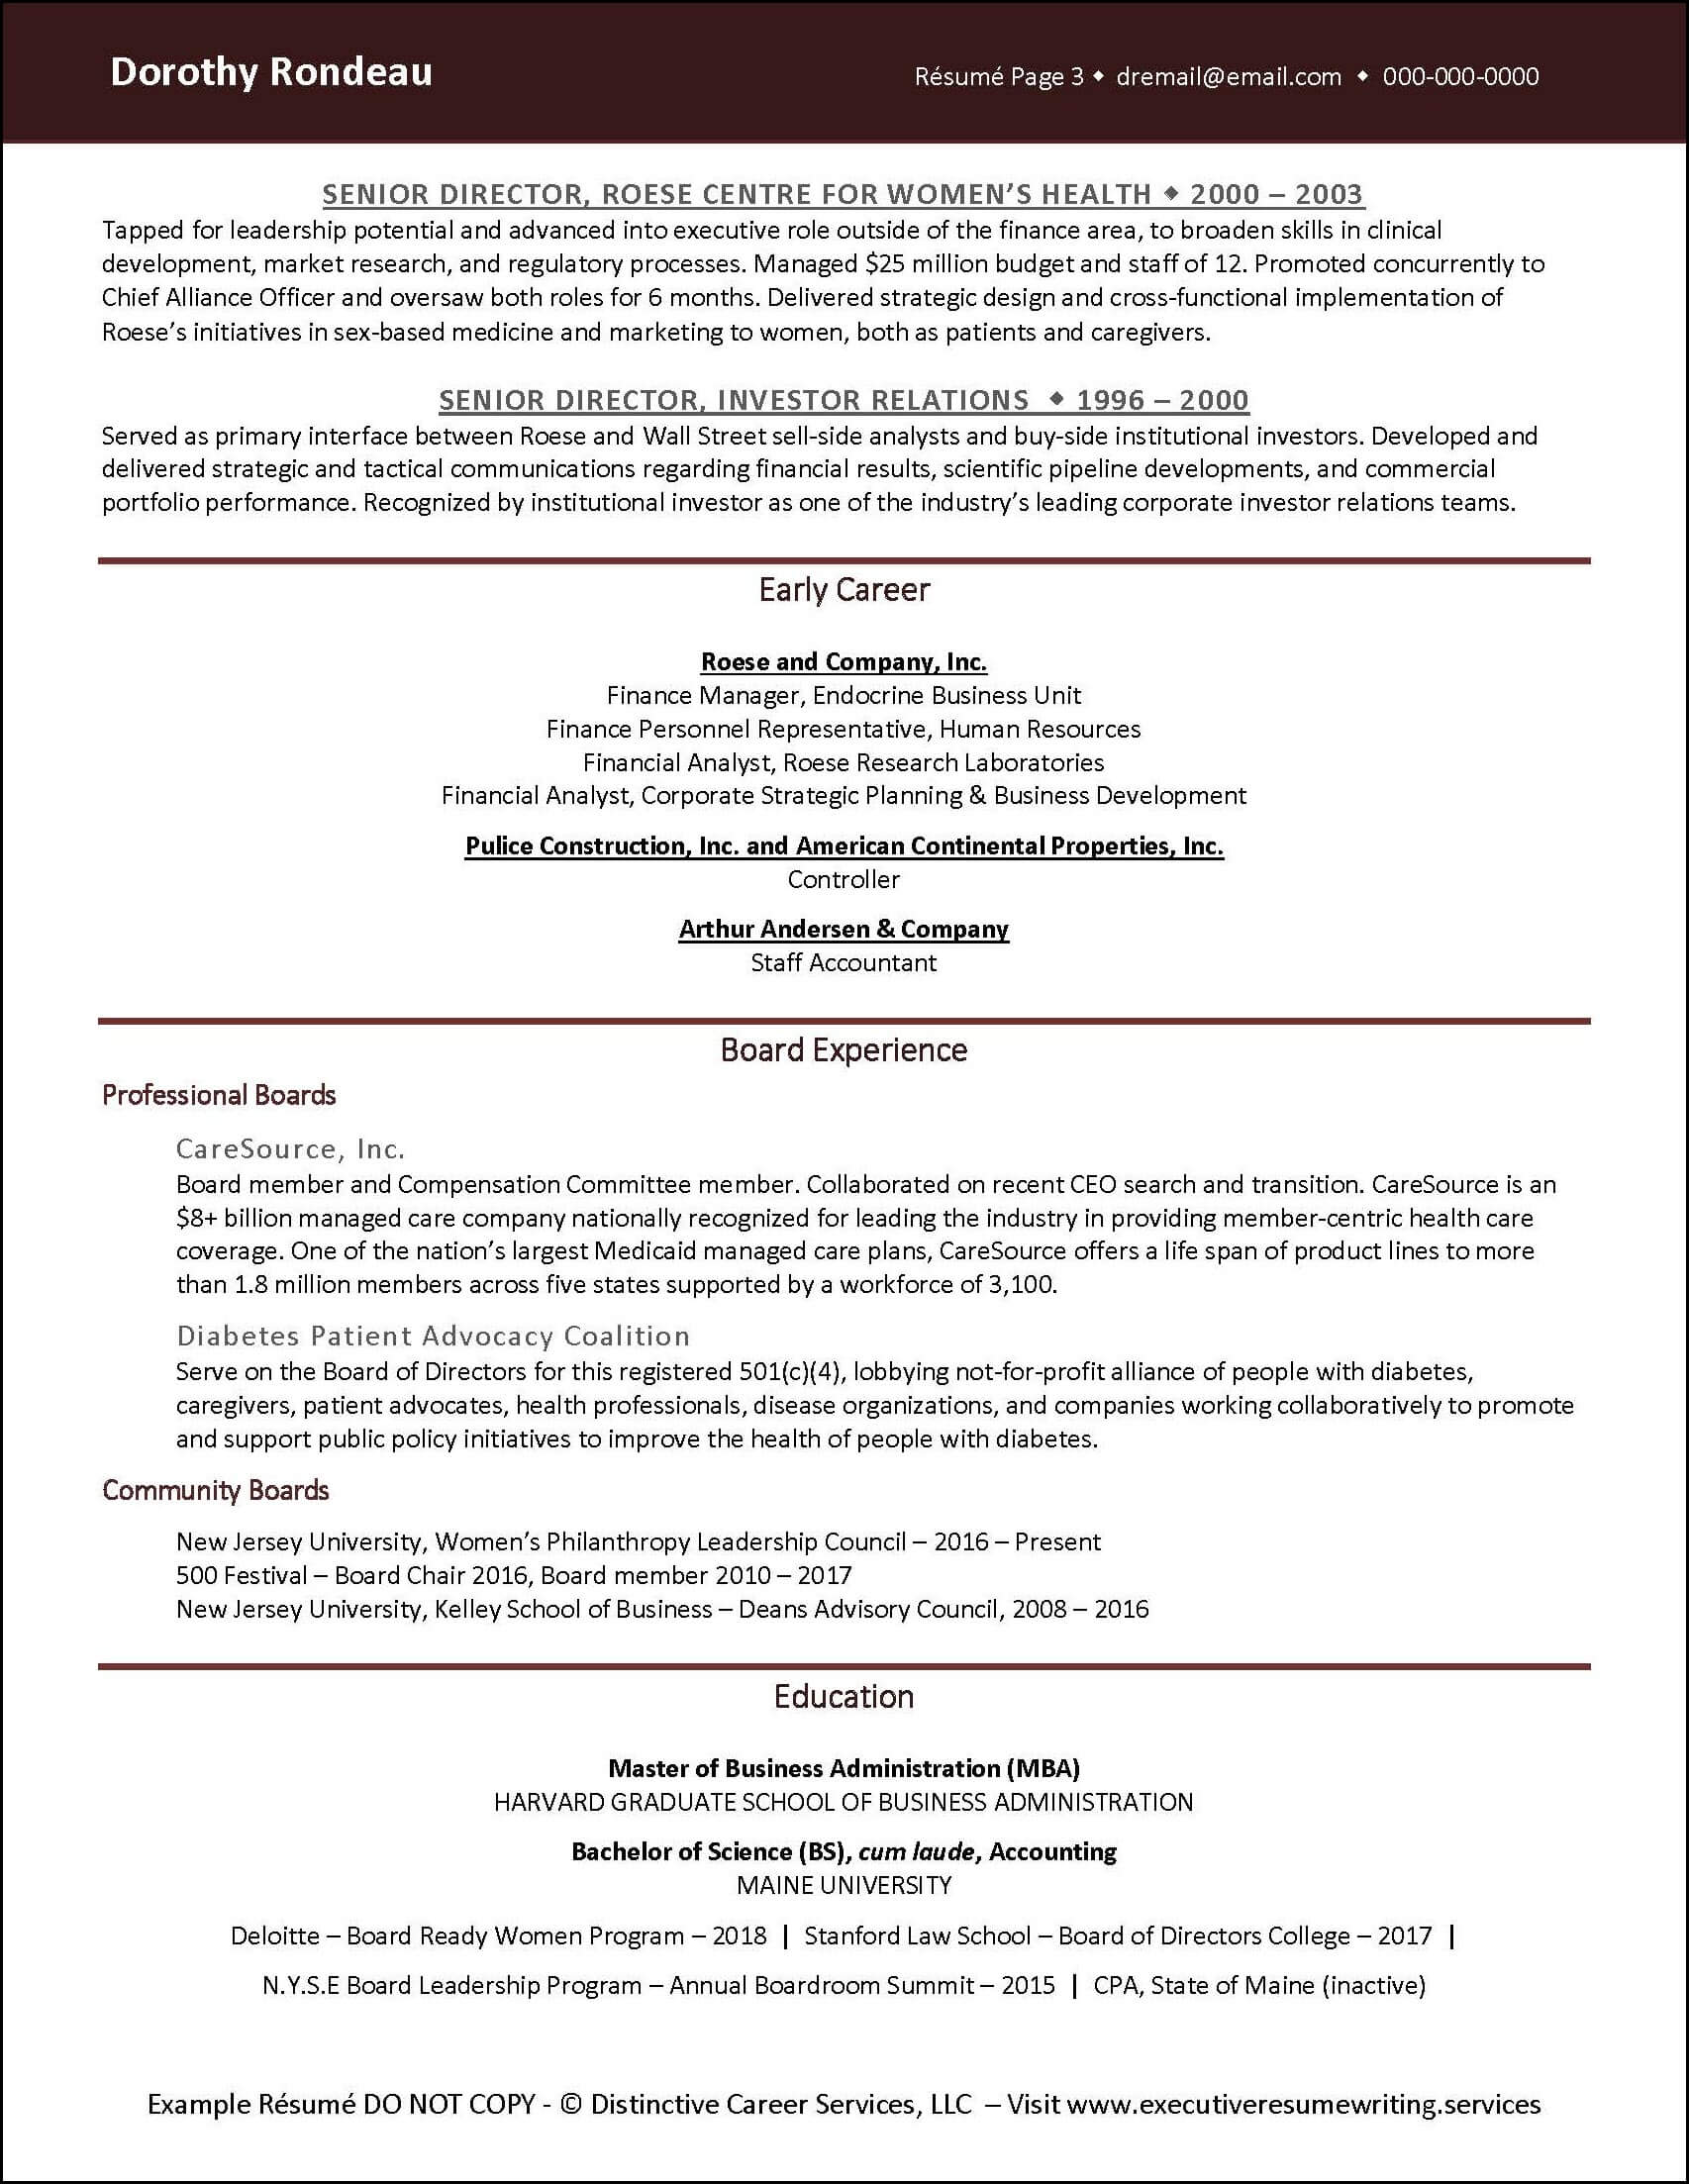 Example Corporate Finance Executive Resume pg 2